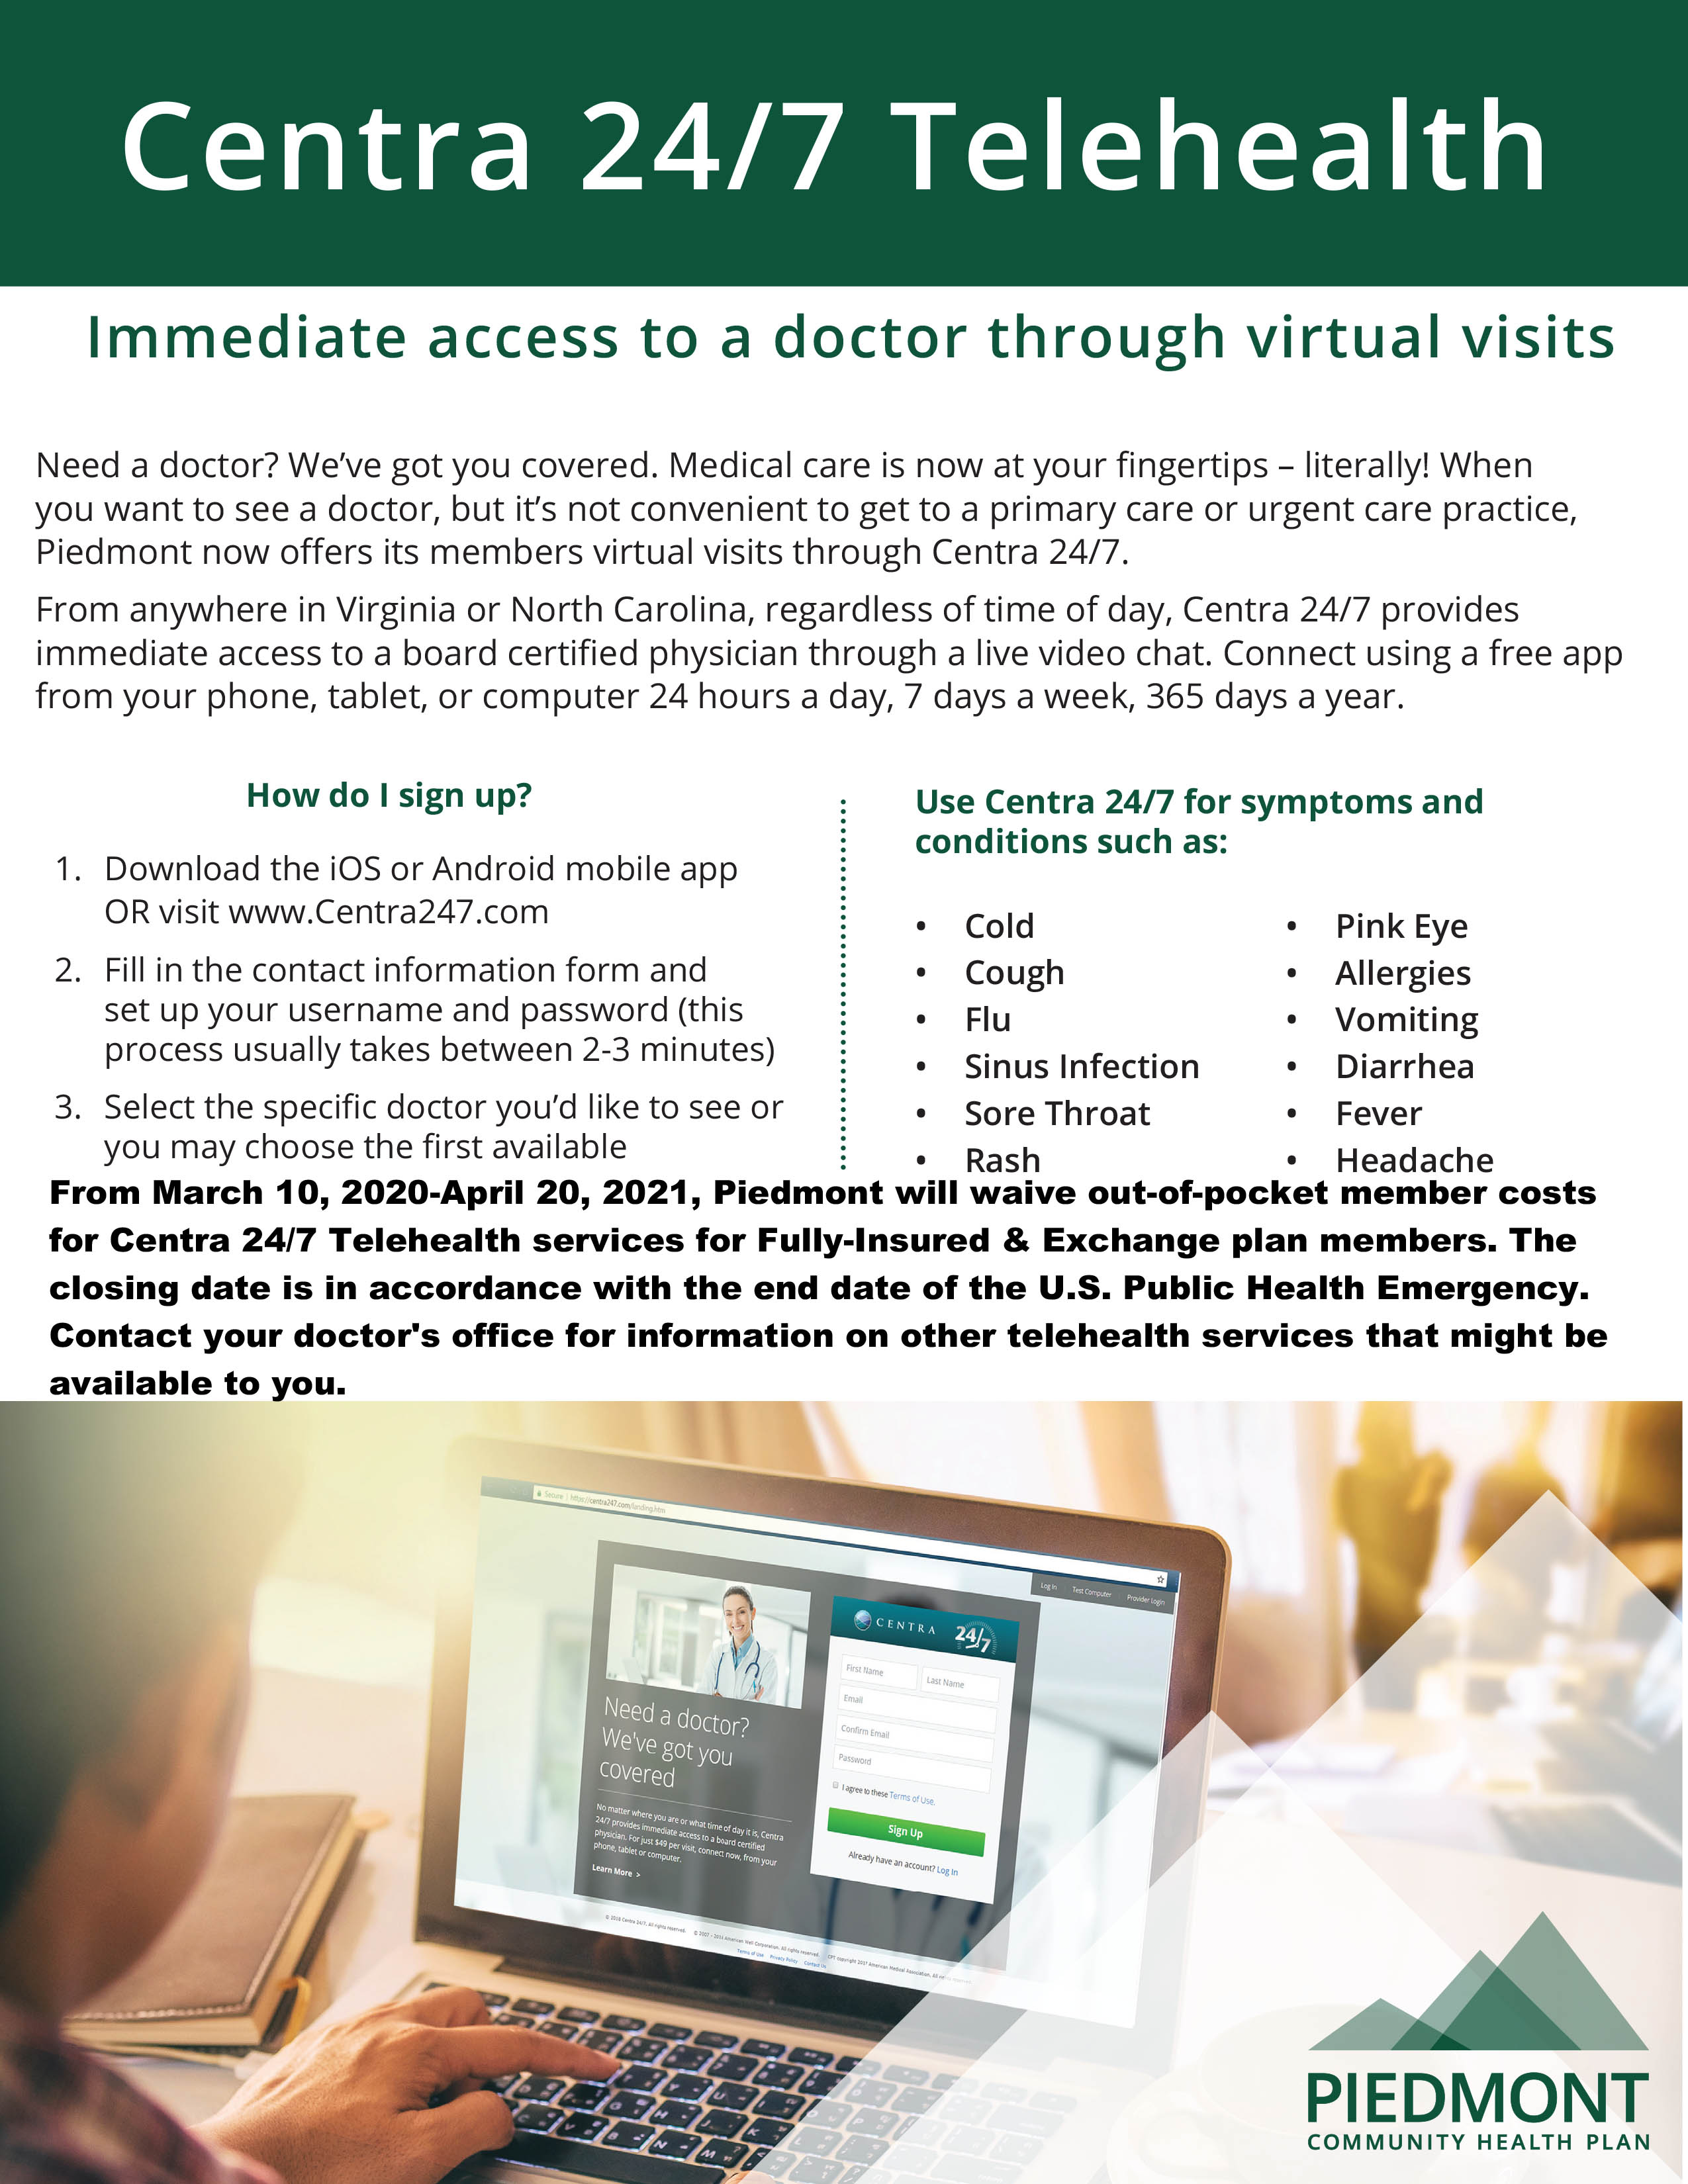 2021_Telehealth_Flyer_includes_COVID_enhanced_benefit_thru_April_20_2021_2.jpg